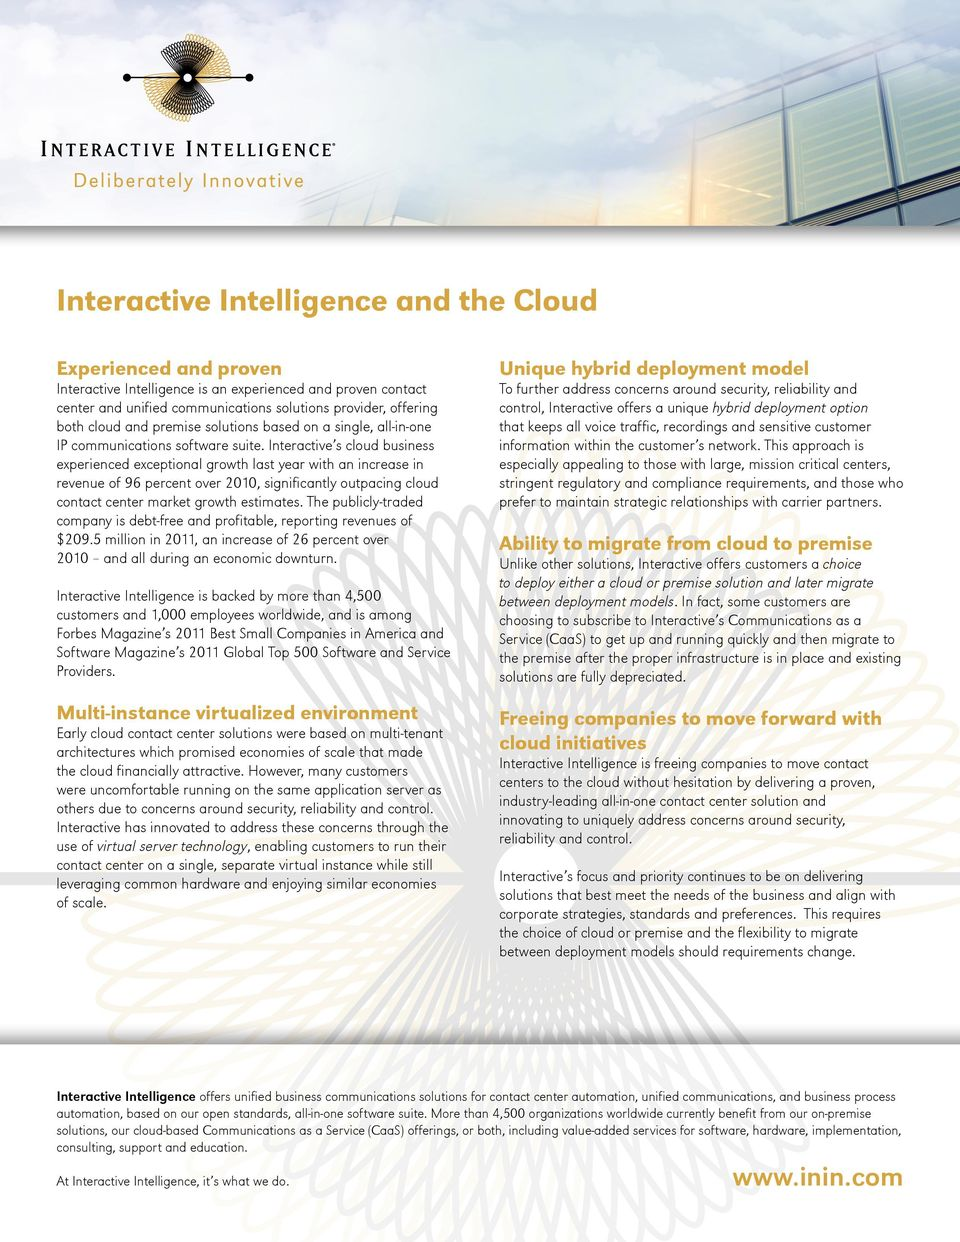 Interactive s cloud business experienced exceptional growth last year with an increase in revenue of 9 percent over 2010, significantly outpacing cloud contact center market growth estimates.